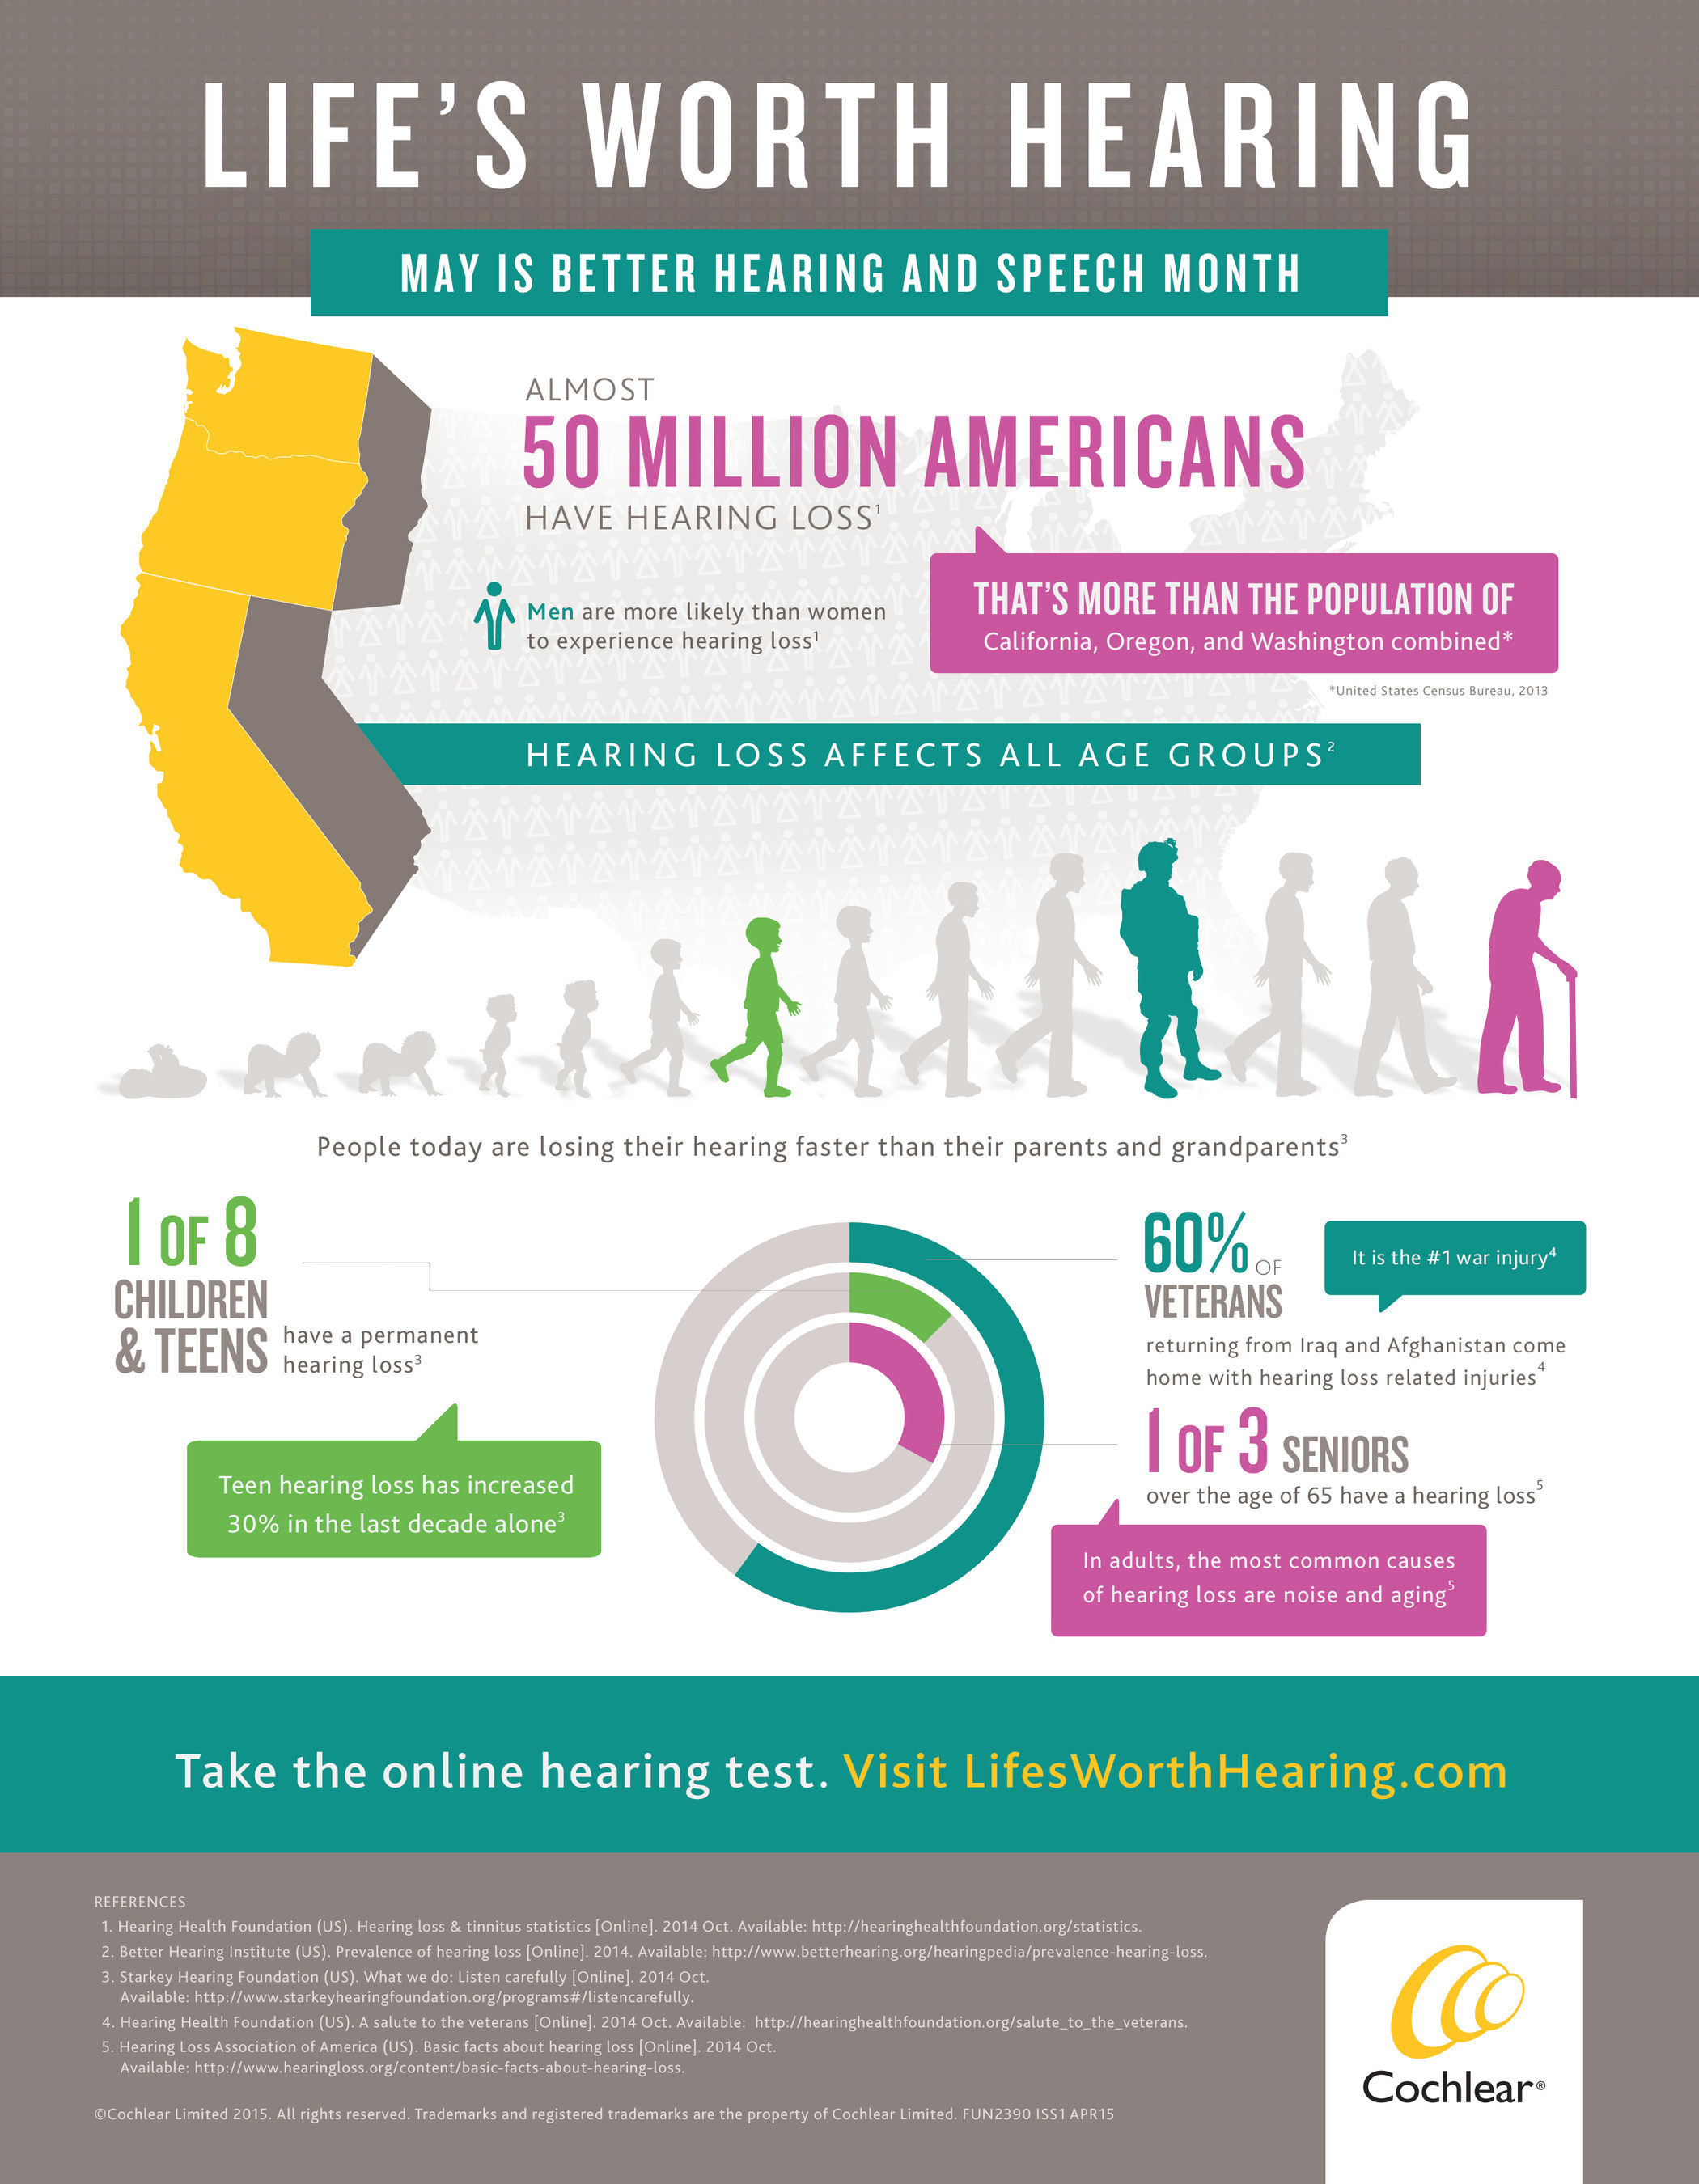 May is Better Hearing & Speech Month, so it is time to learn the facts about how addressing hearing loss can ...